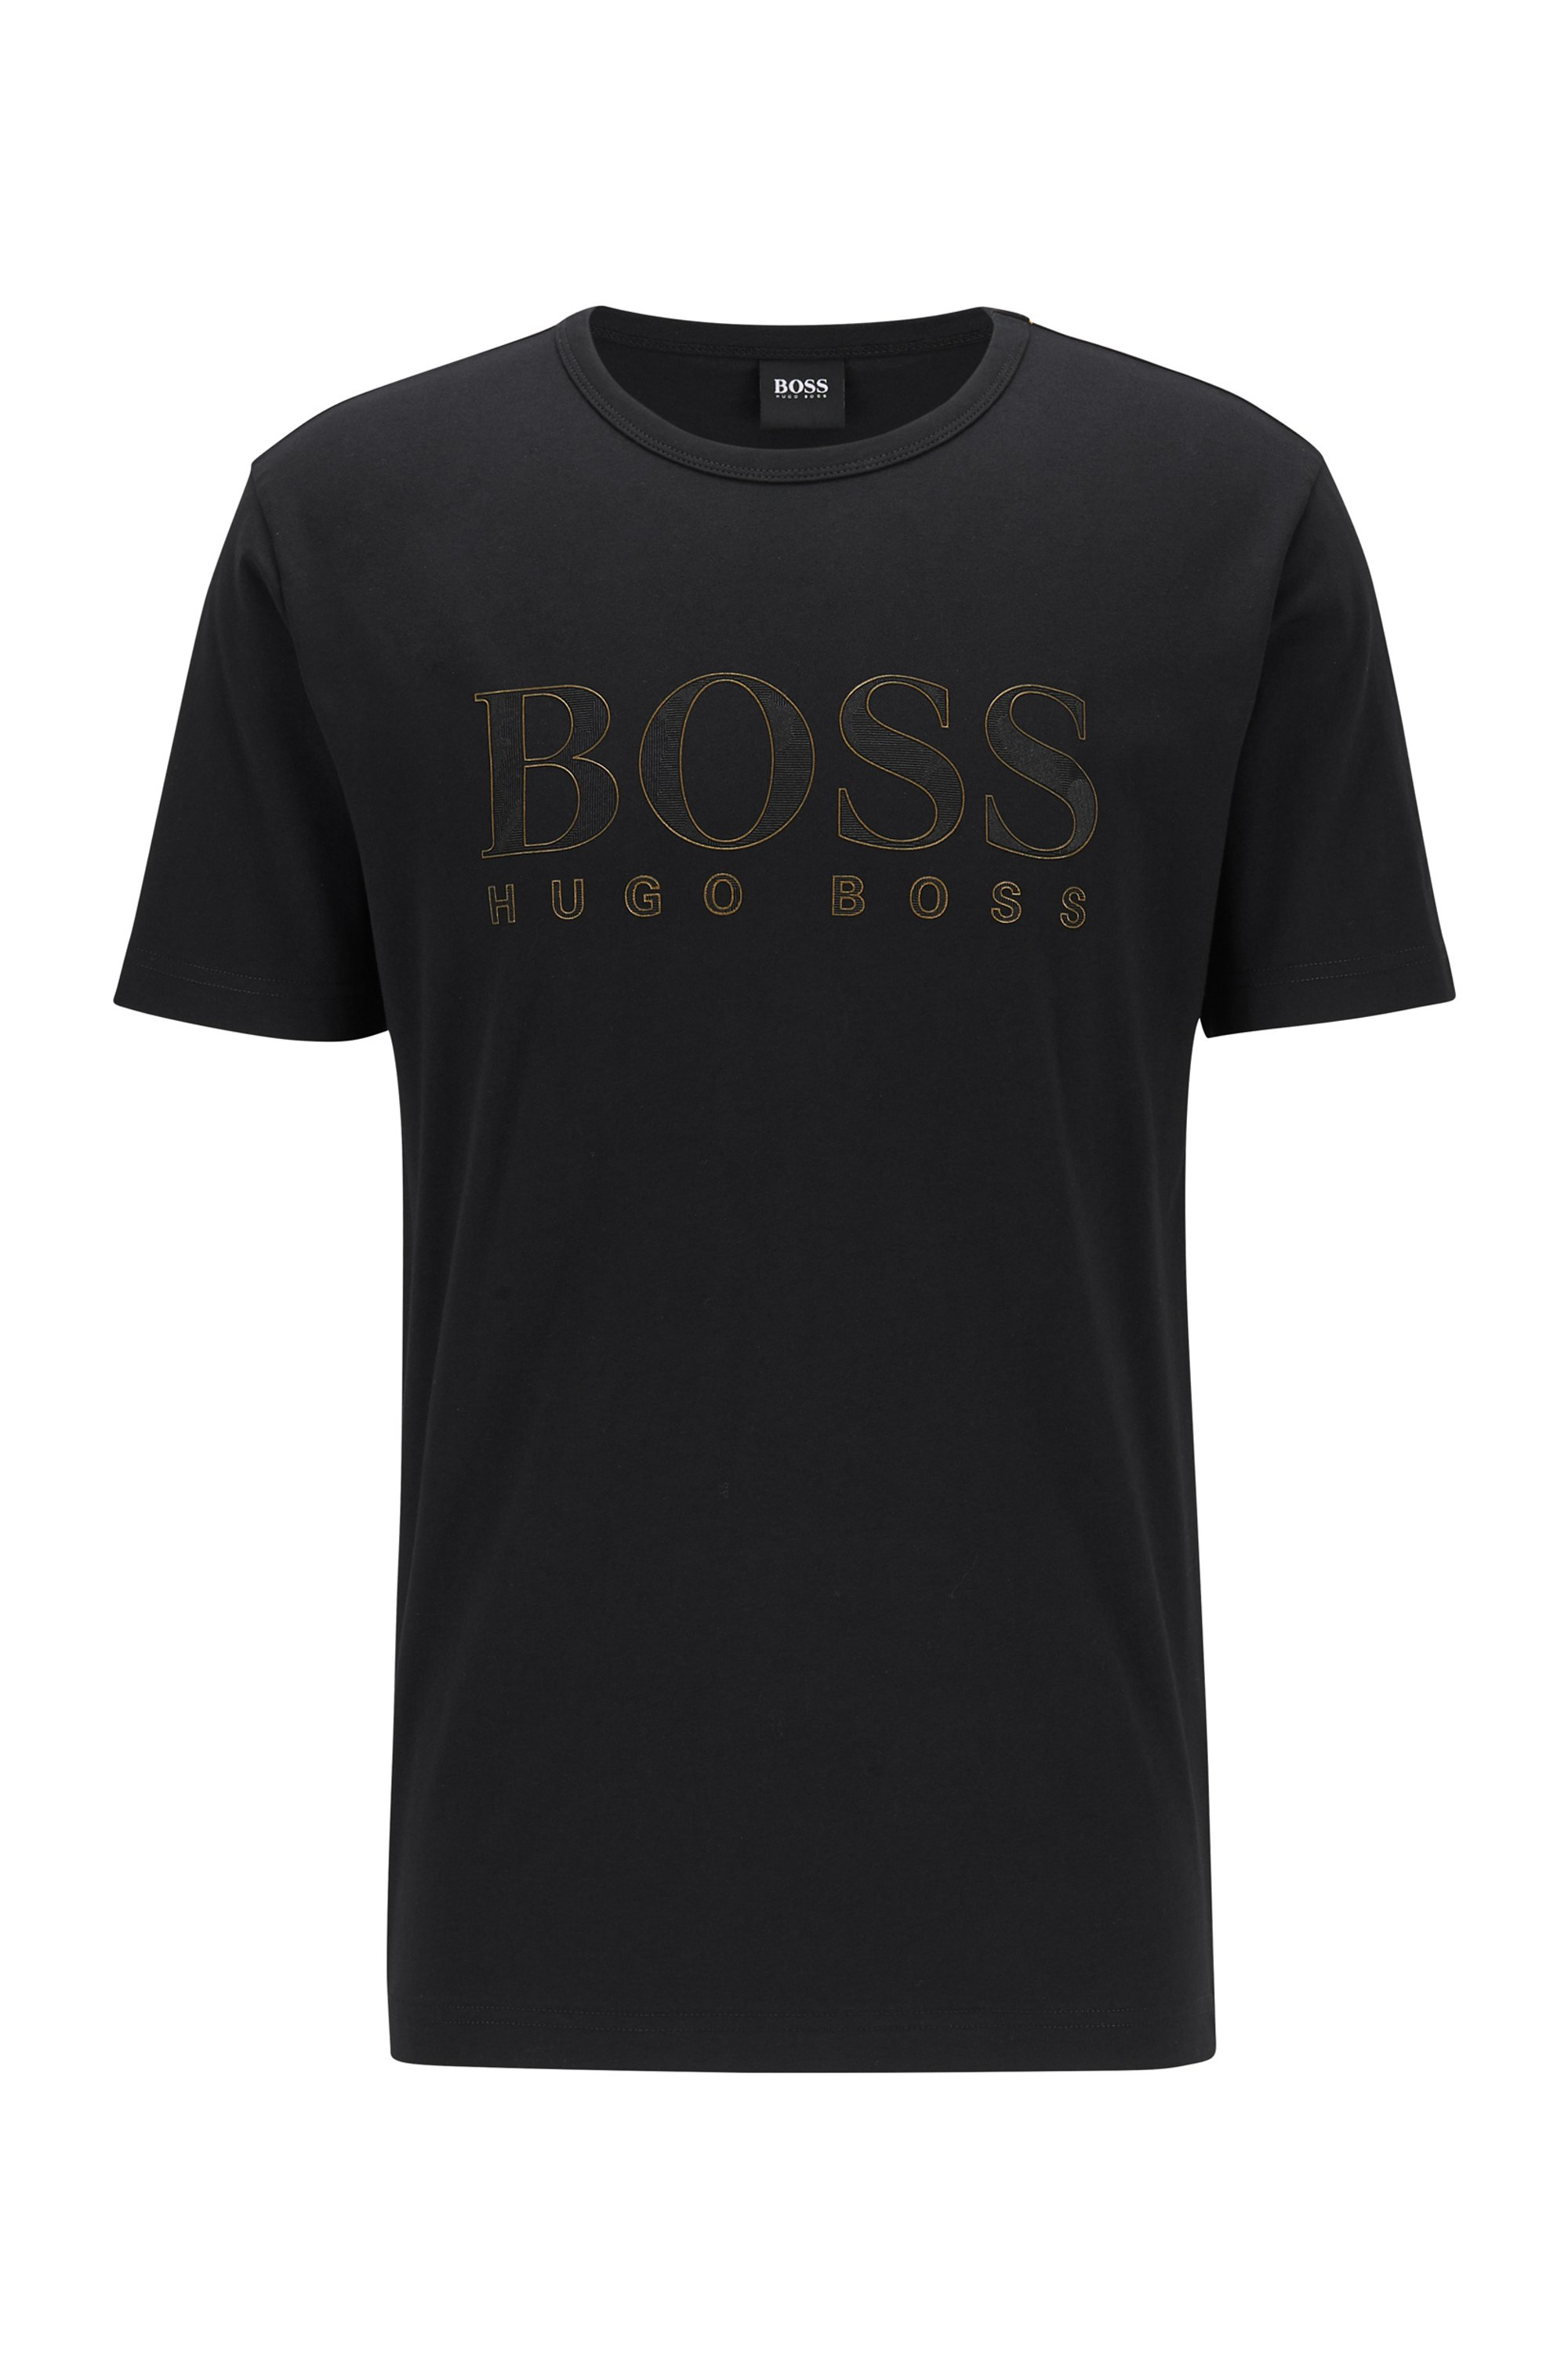 Slim-fit T-shirt in cotton with gold-effect logo, Black